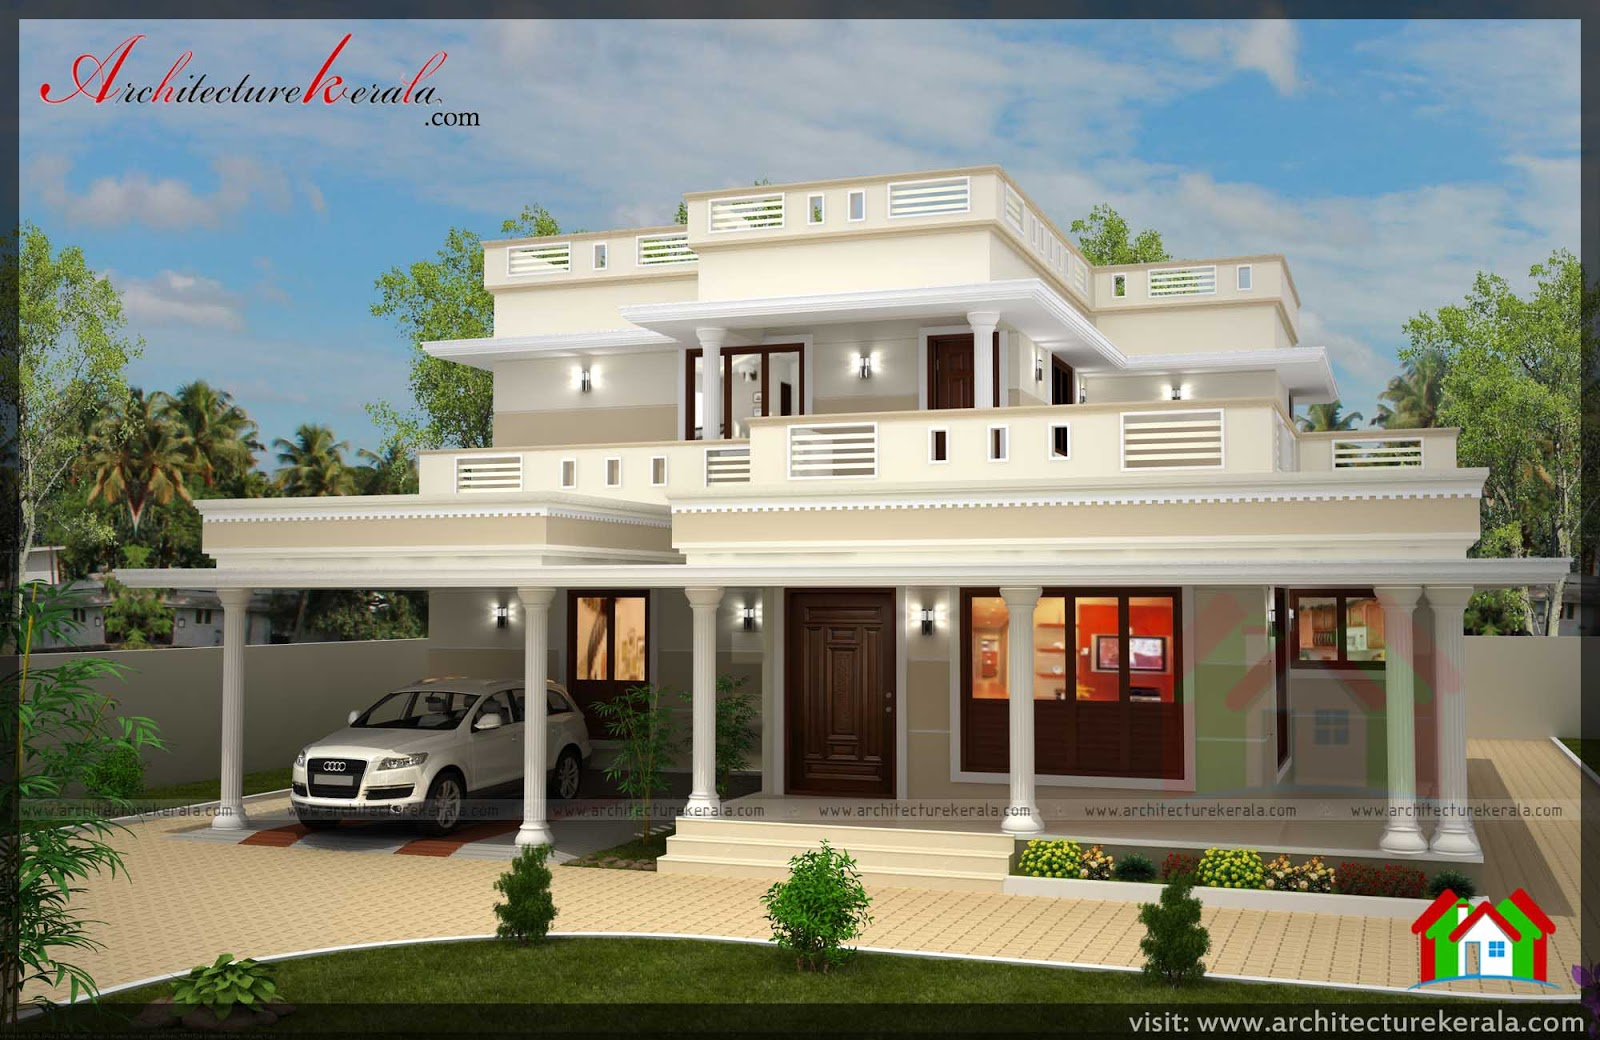 4 bed house plan with pooja room architecture kerala for In home designs